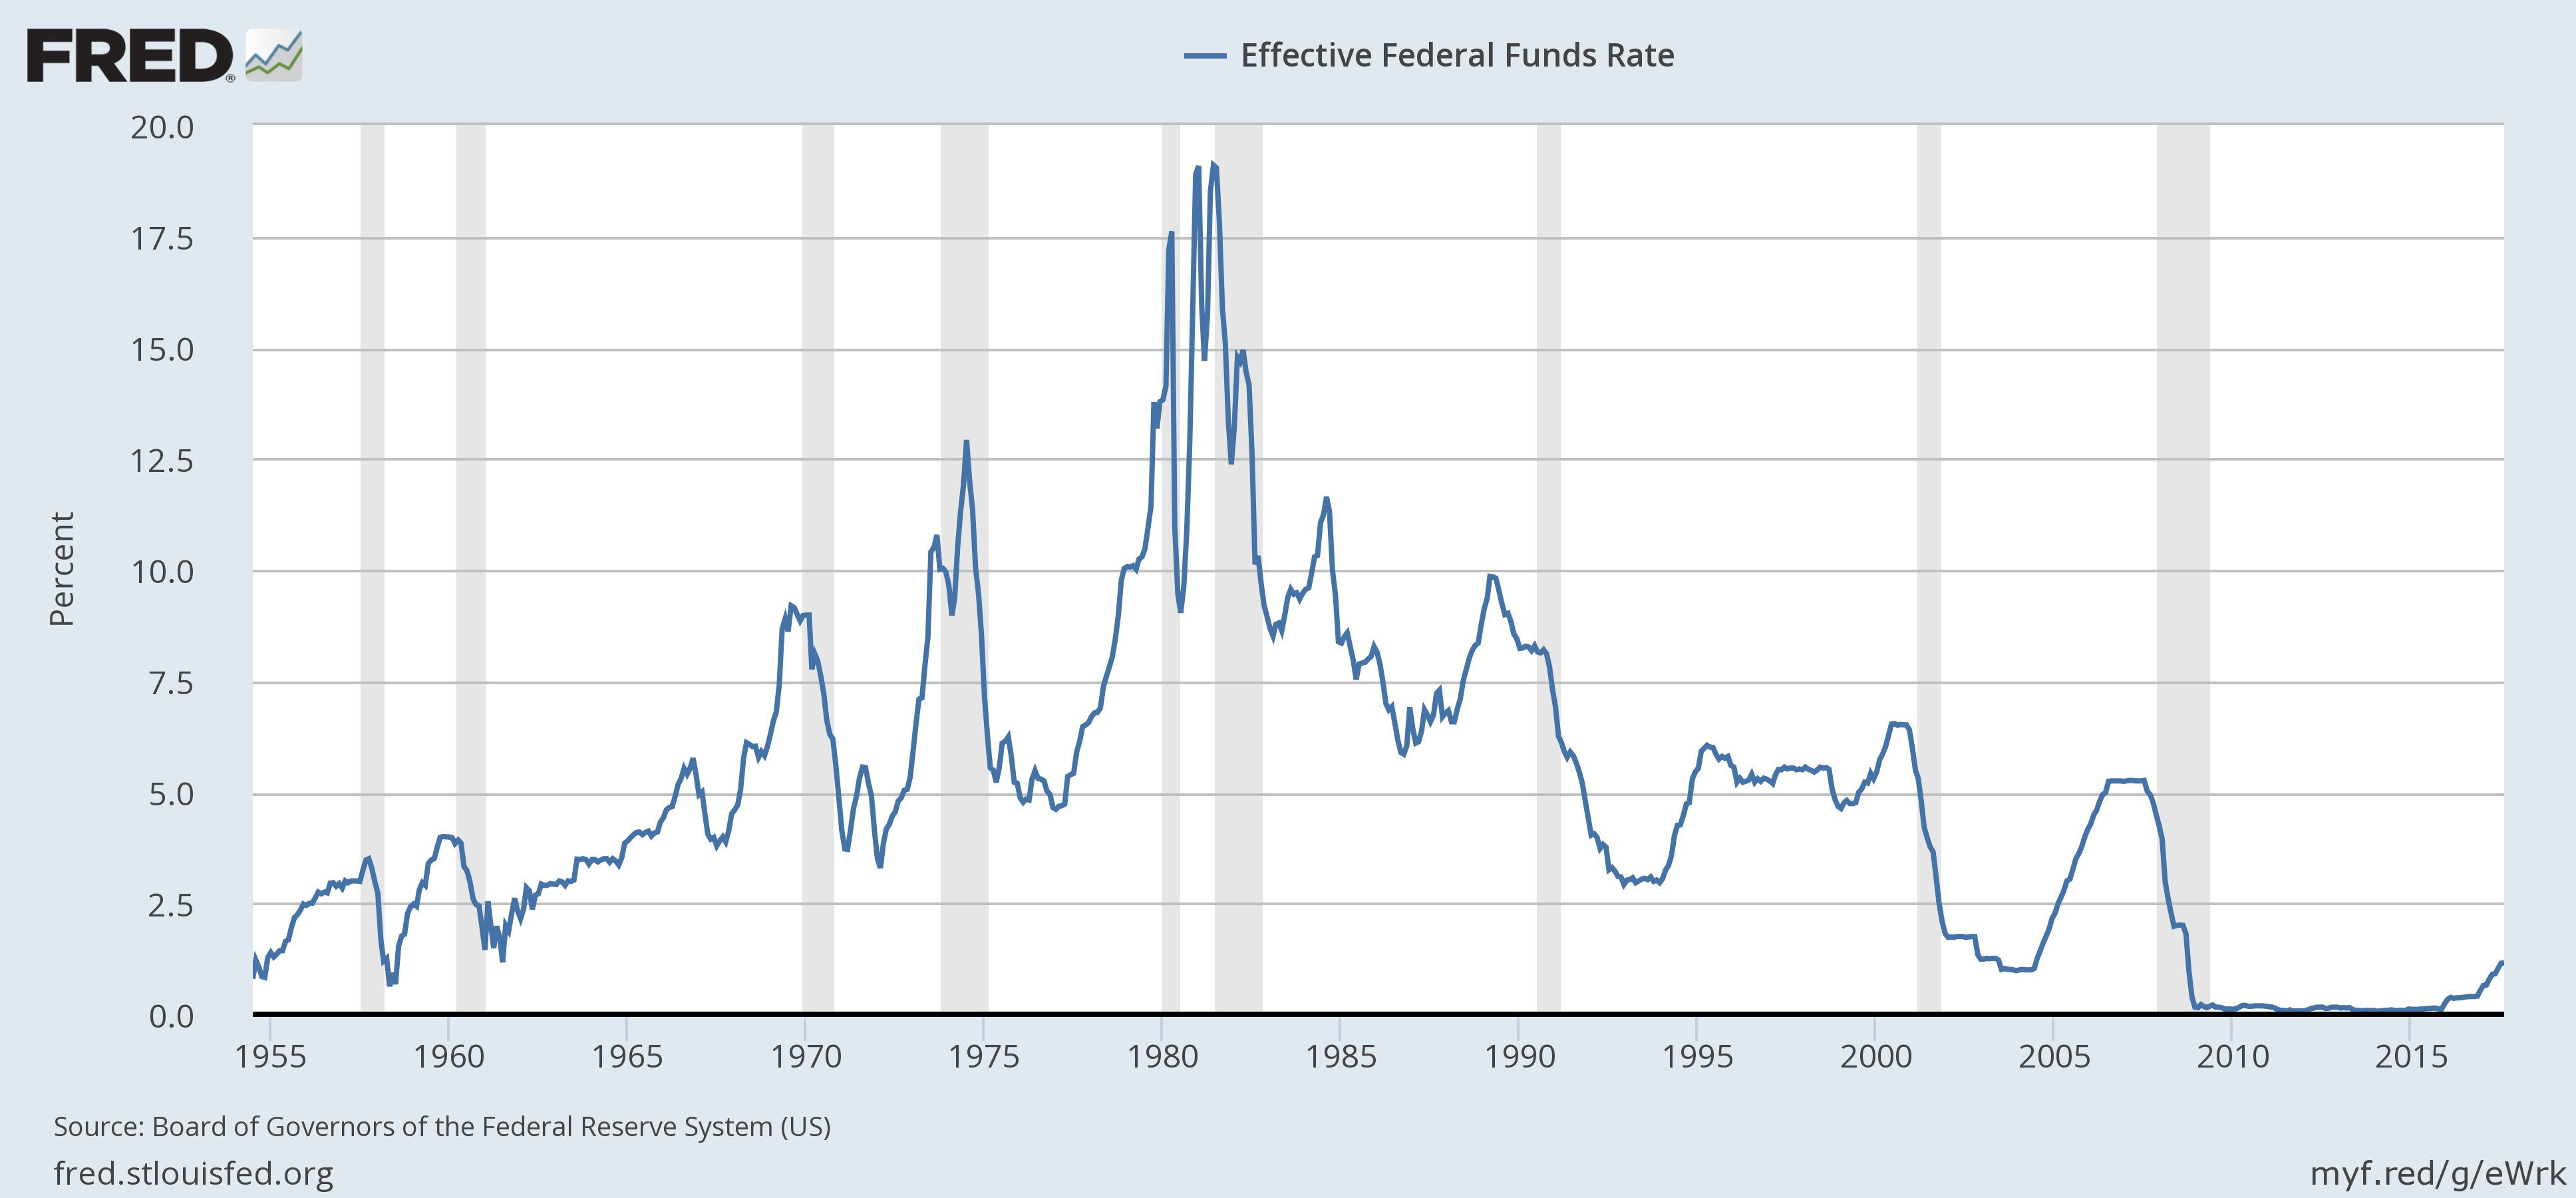 Previous interest rates